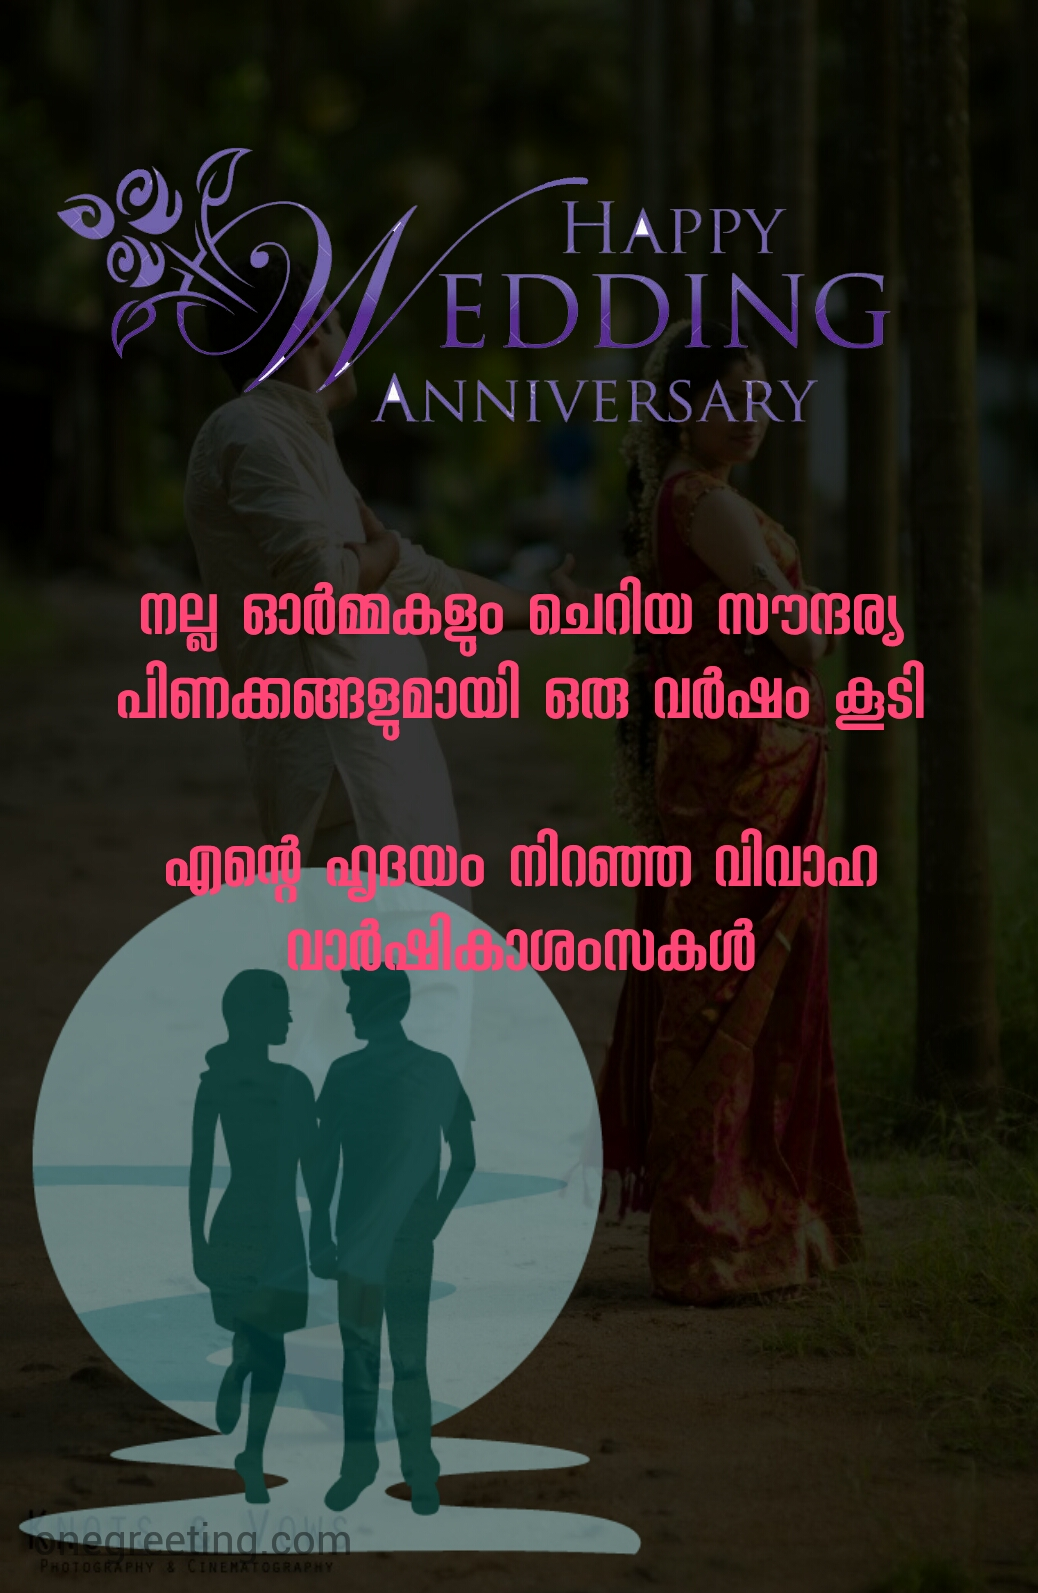 Happy wedding anniversary wishes one greeting just wish simple wishes lots of free greeting new greetings sms best rated greetings sms lovely greetings sms english greetings sms greetings sms text m4hsunfo